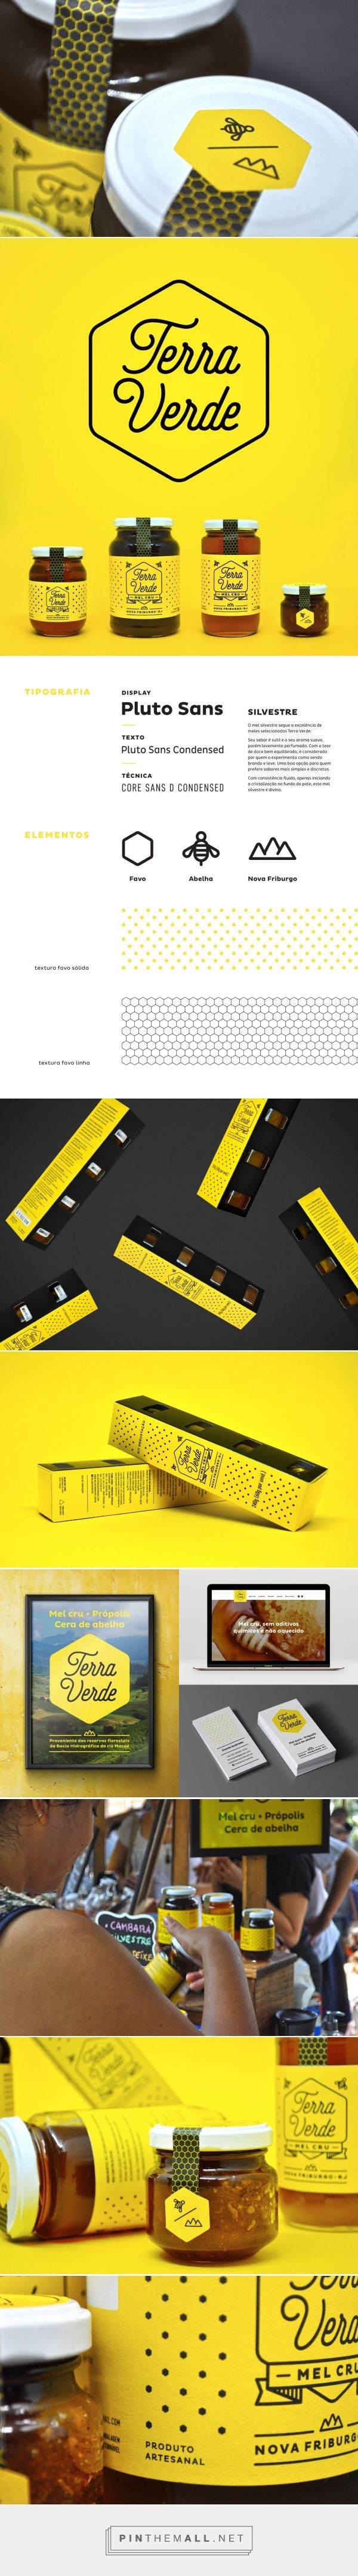 Terra Verde - Packaging of the World - Creative Package Design Gallery - http://www.packagingoftheworld.com/2017/02/terra-verde.html